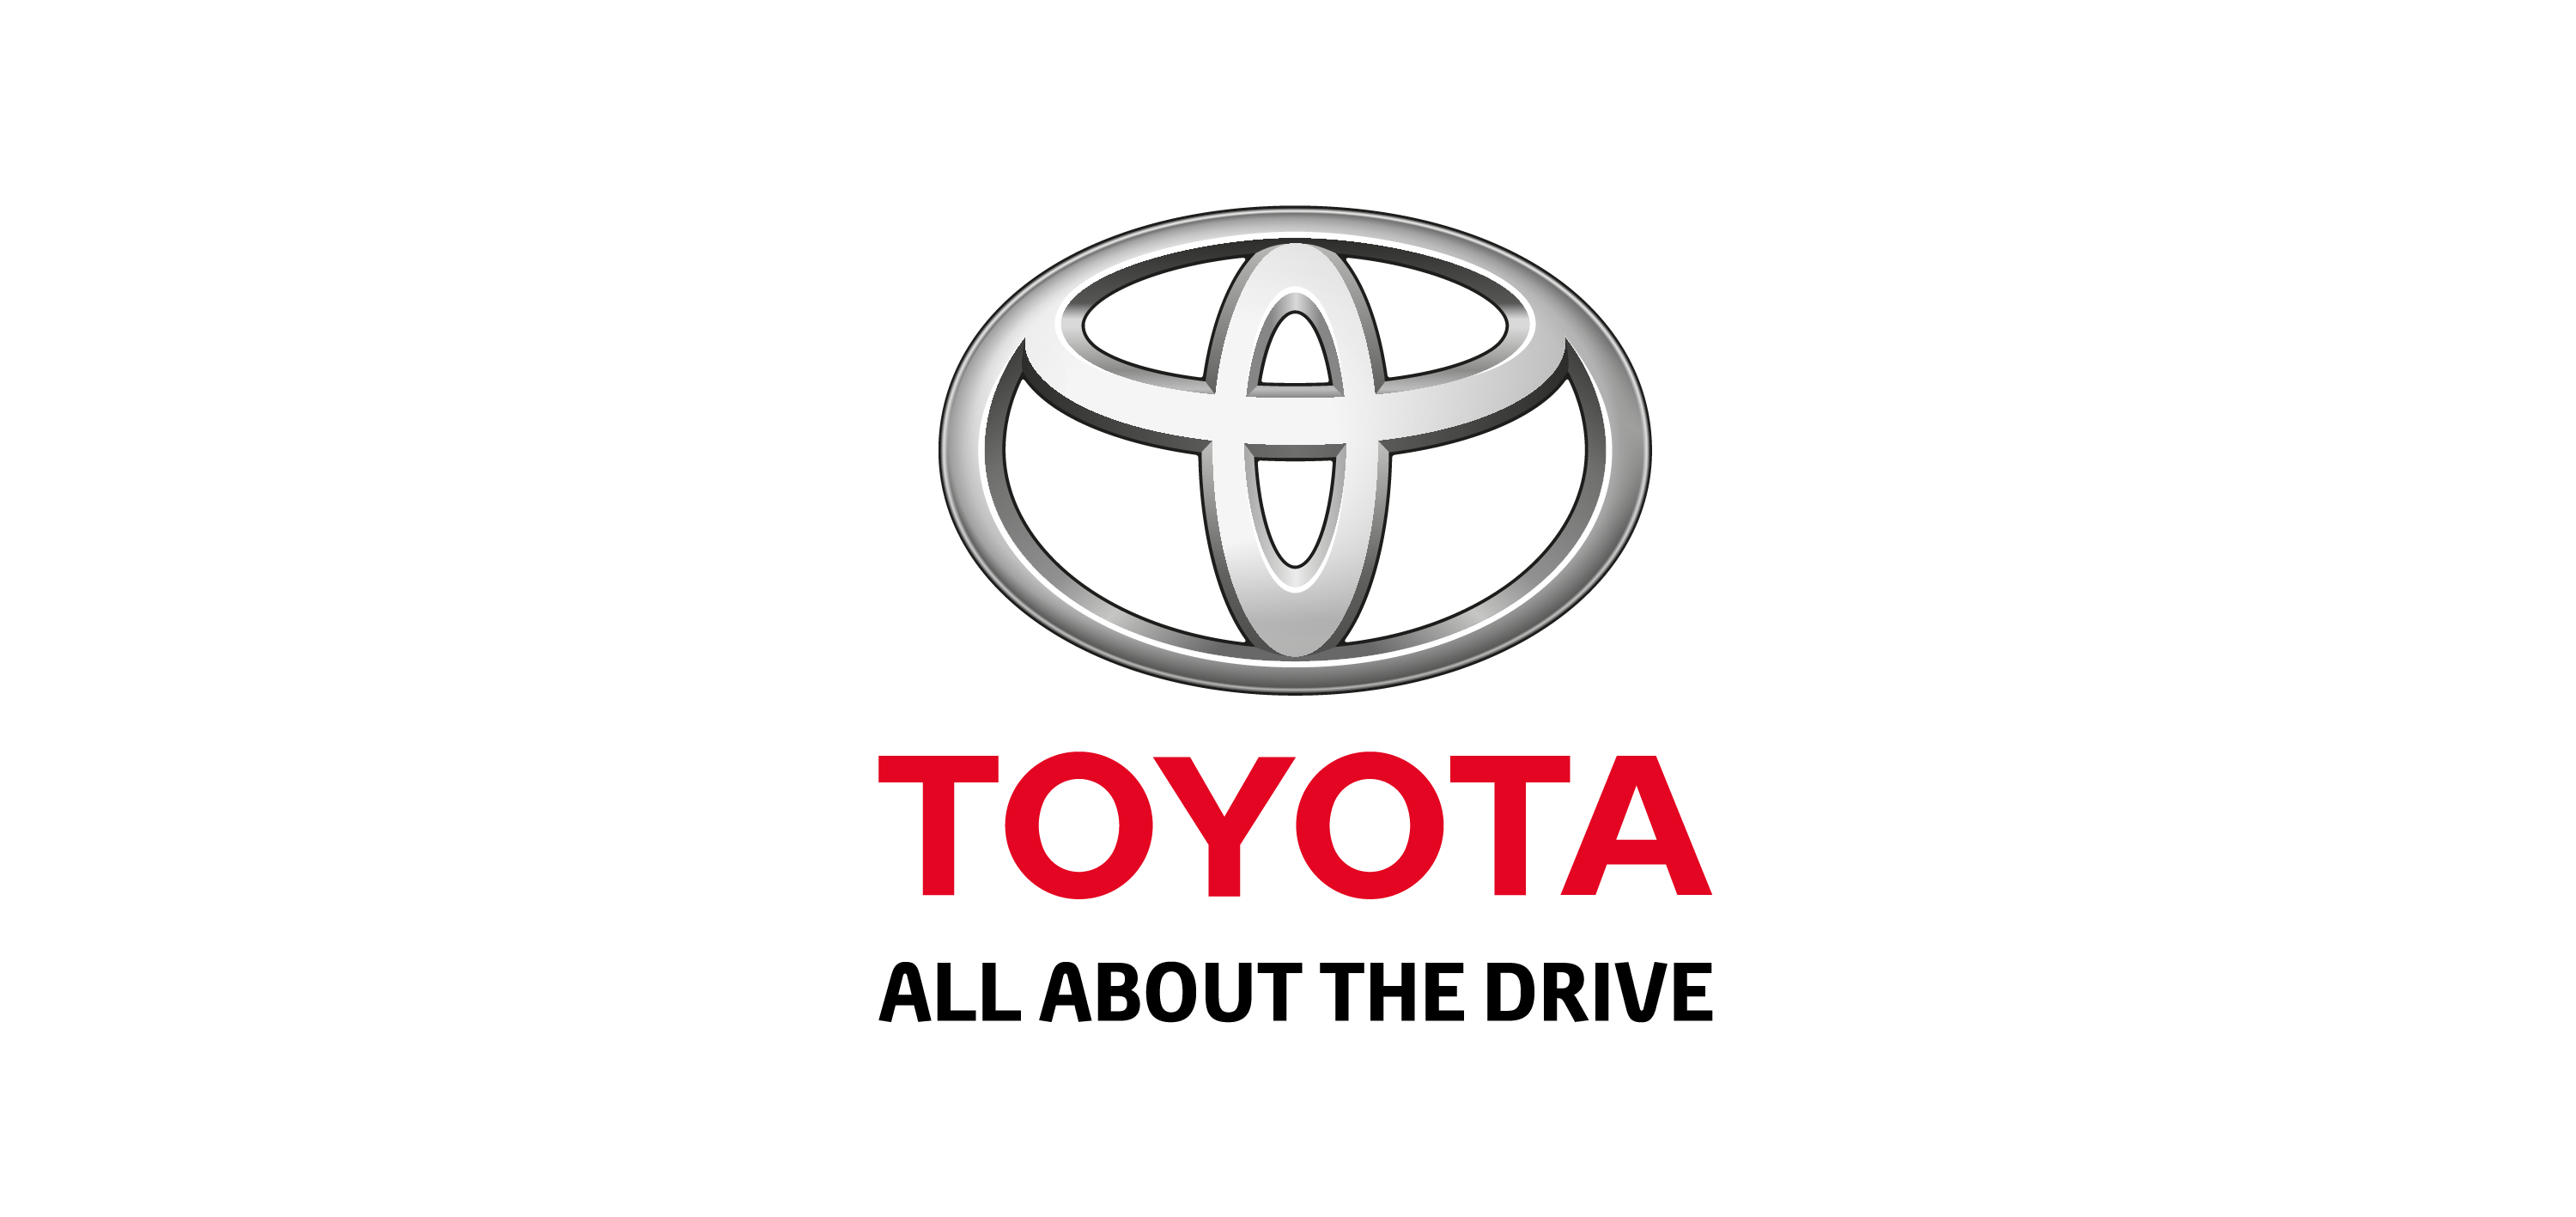 toyota all about the drive logo